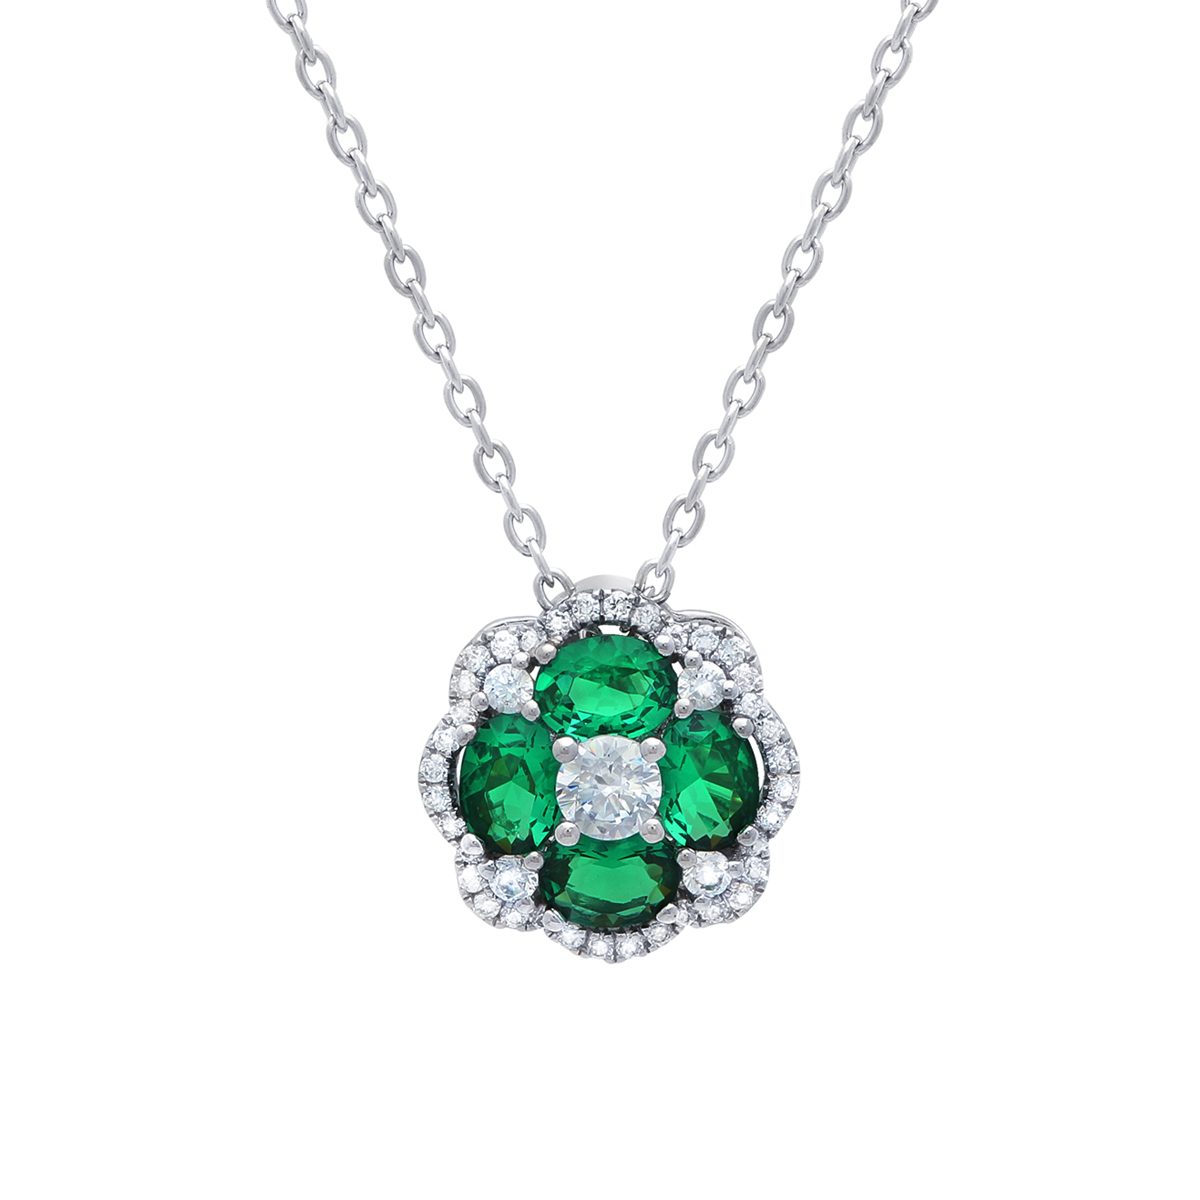 All I Adore Emerald and Diamond Cluster Pendant - This all I adore emerald and diamond cluster pendant comes in a variety of material types like 14k white gold, yellow gold, rose gold and can be customized with your jeweler. Fana gemstone earrings are perfect for that special woman in your life.